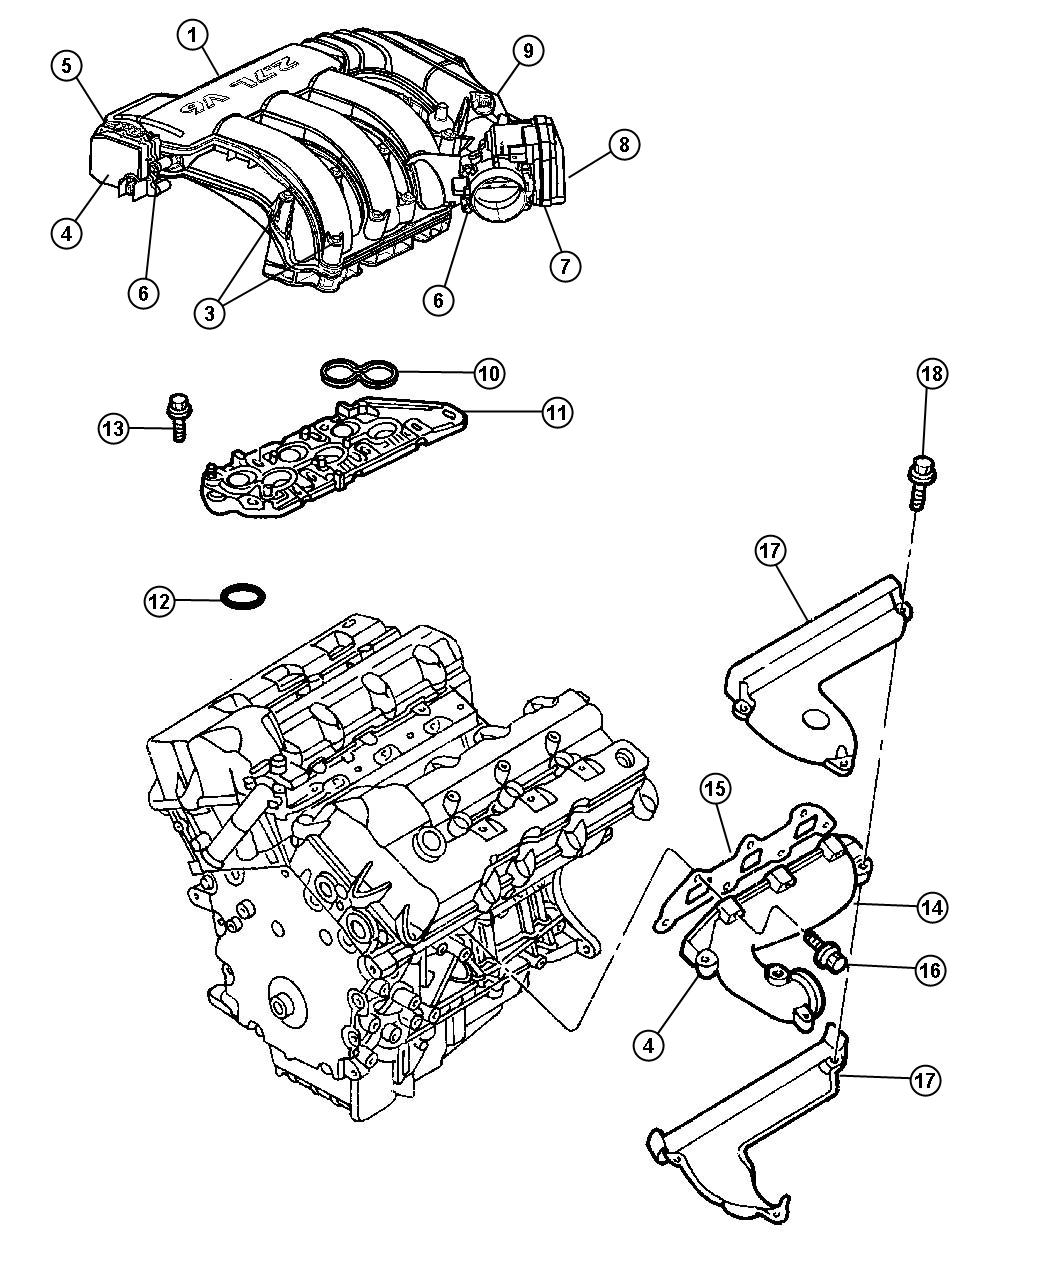 426 Hemi Engine Wire Diagram